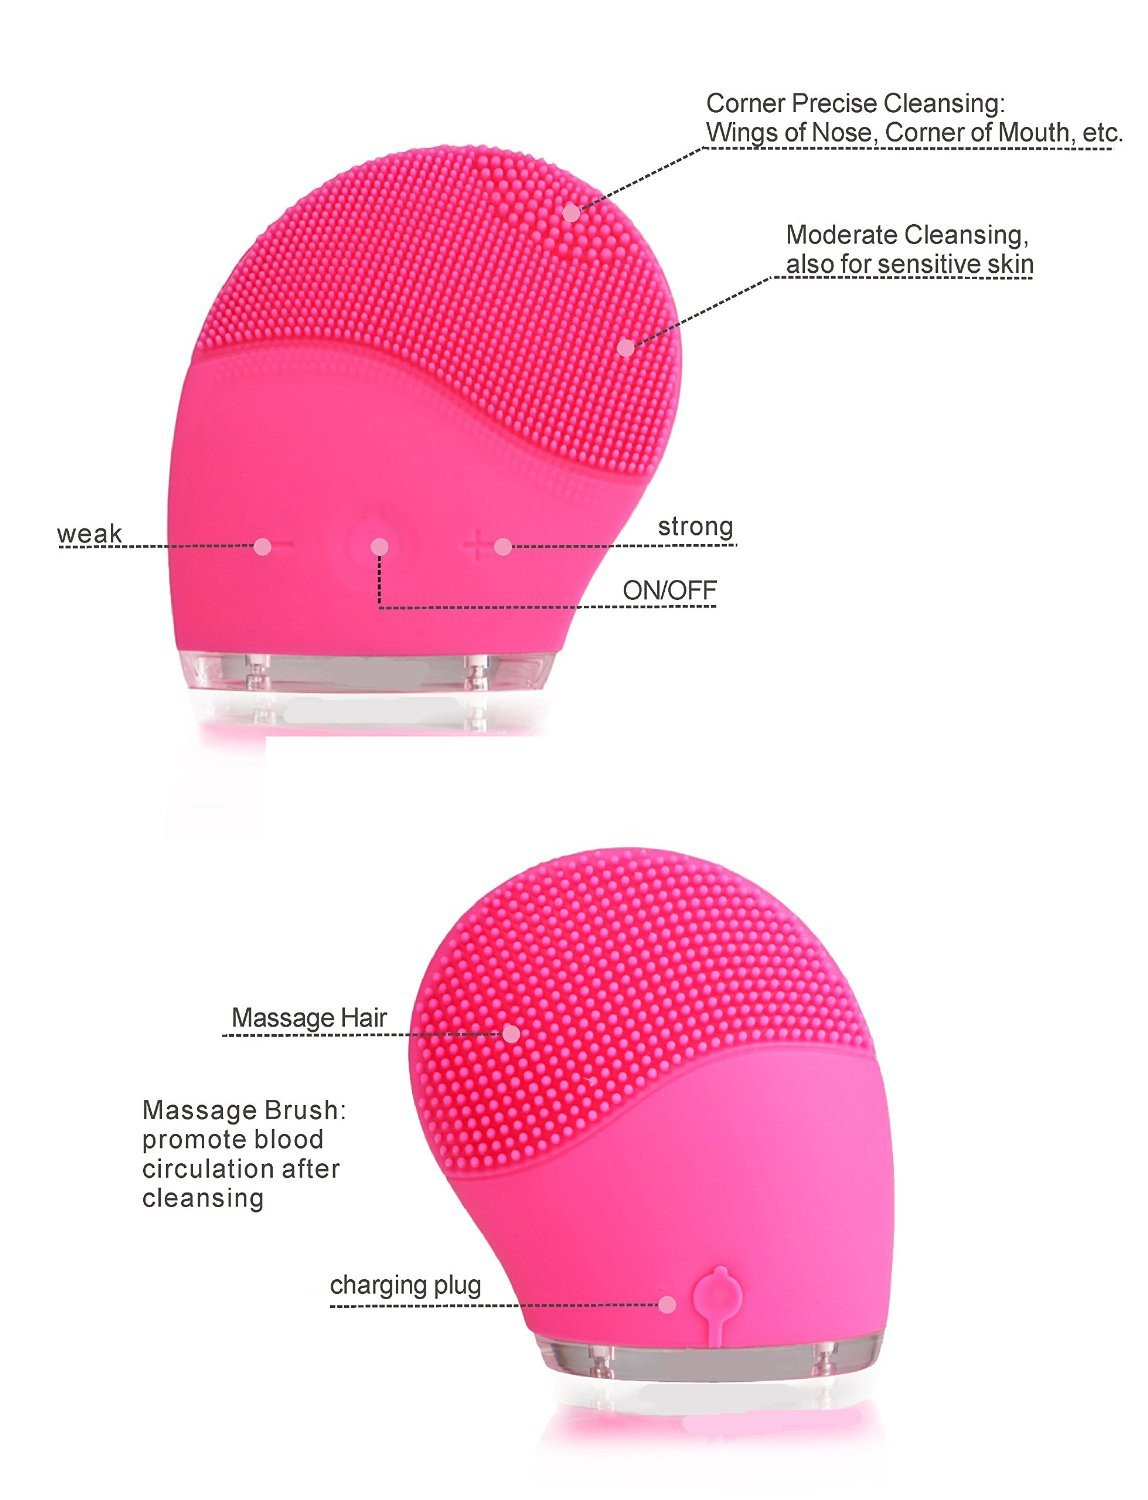 VibraSpa Bella Ultrasonic Silicone Skin Cleansing Device - Hot Pink Daggett & Ramsdell Skin Care Set of 5 in One Box